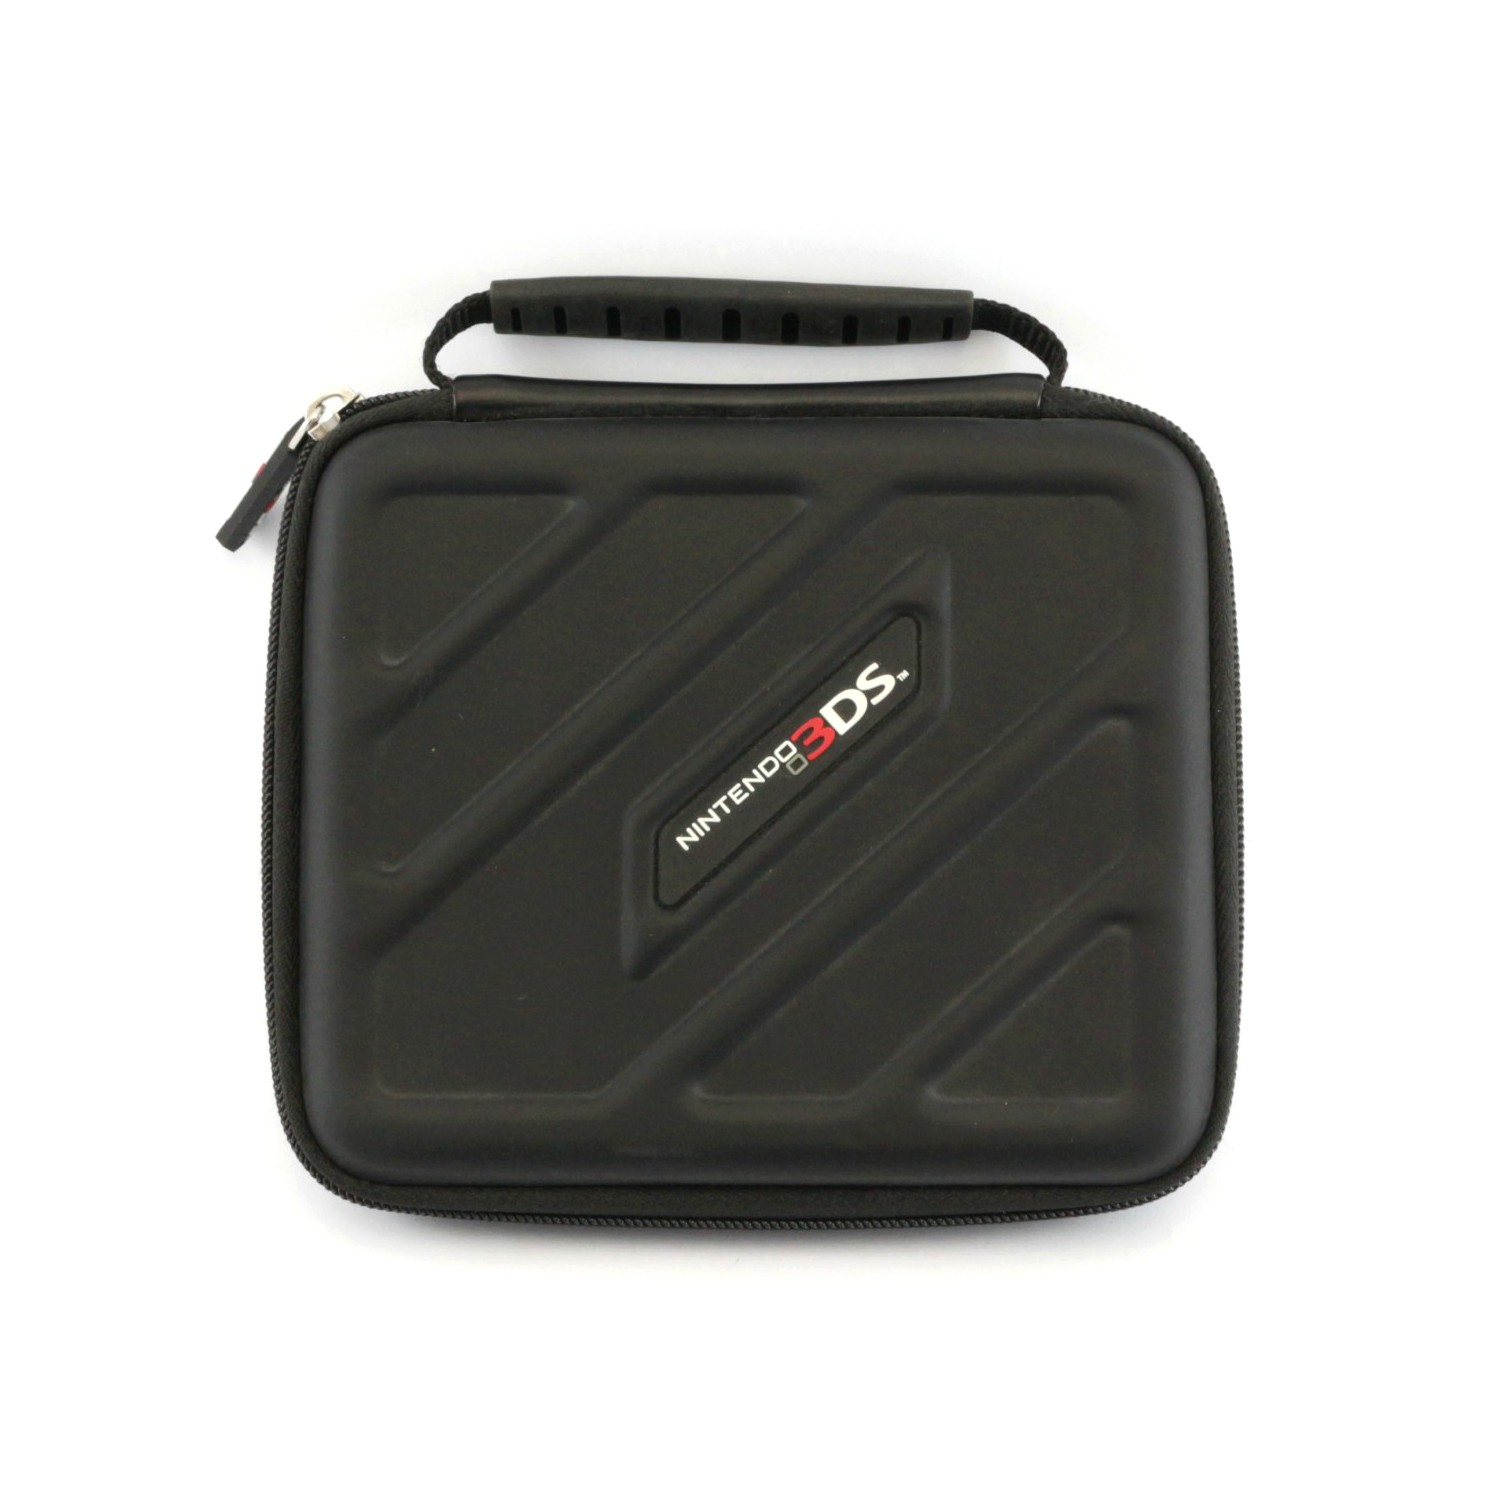 Original 3DS XL Tasche / Carry Case / Travel Bag / Koffer für Konsole #schwarz